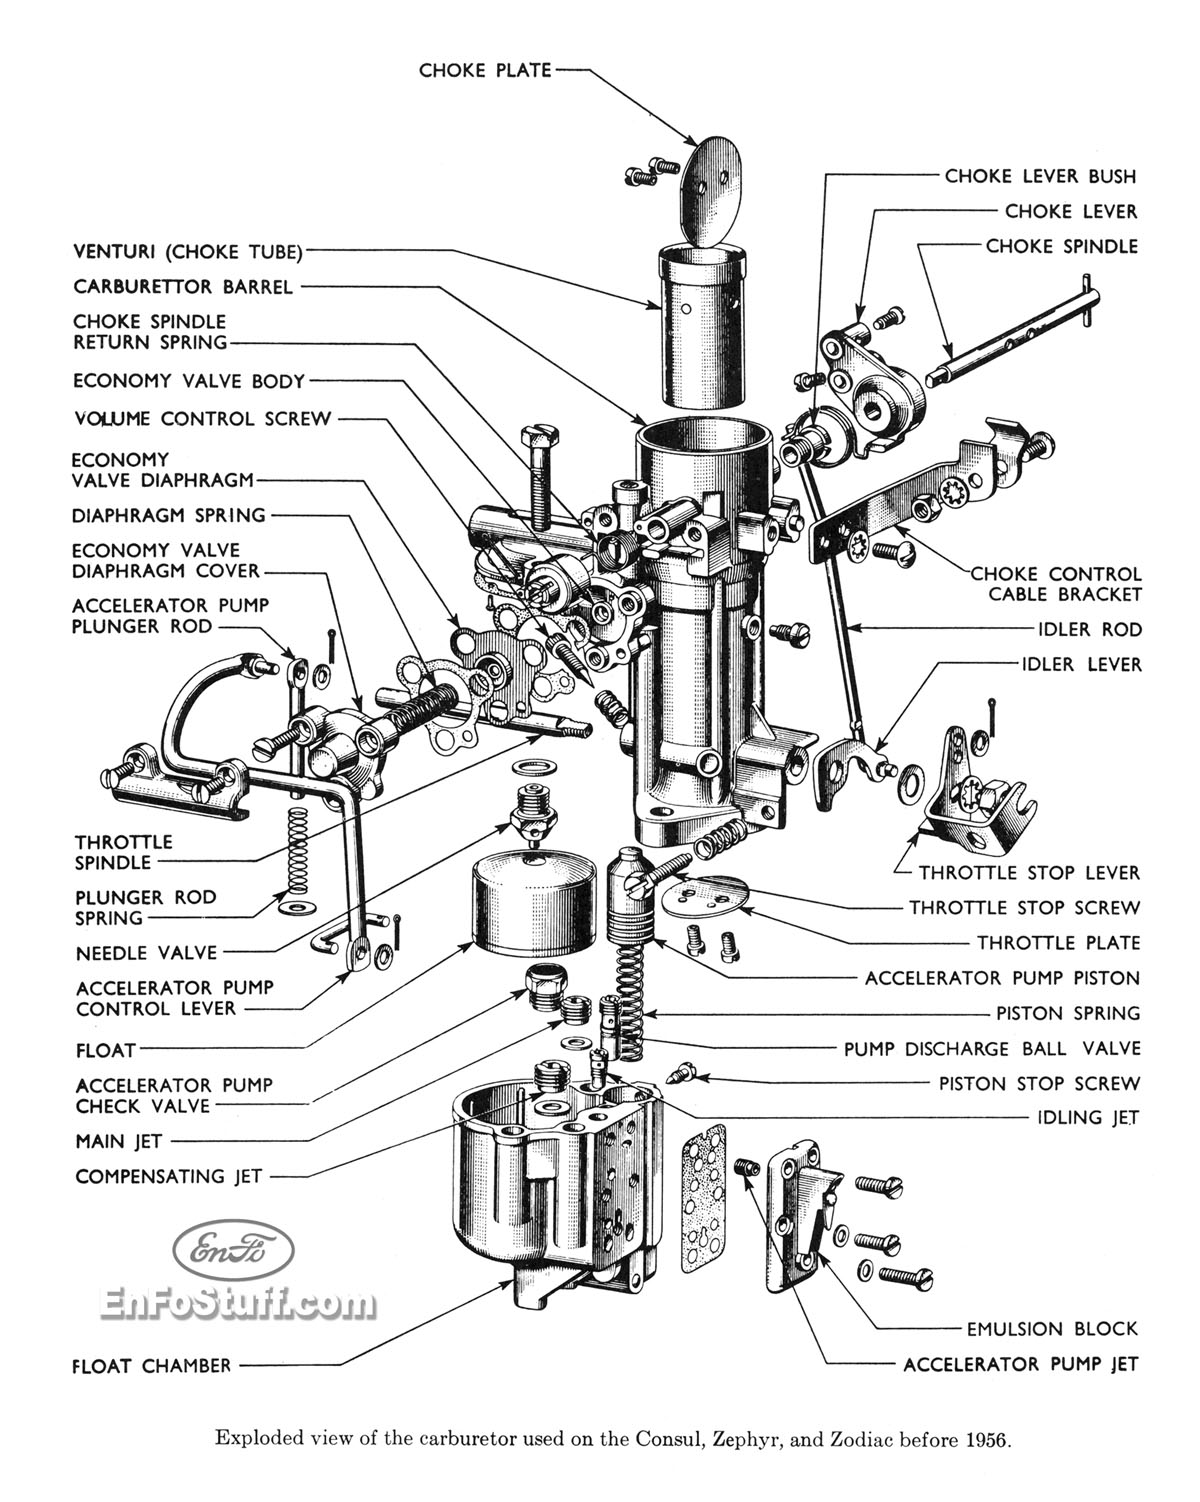 Carburetor Diagram For Ford Zephyr And Zodiac Pre